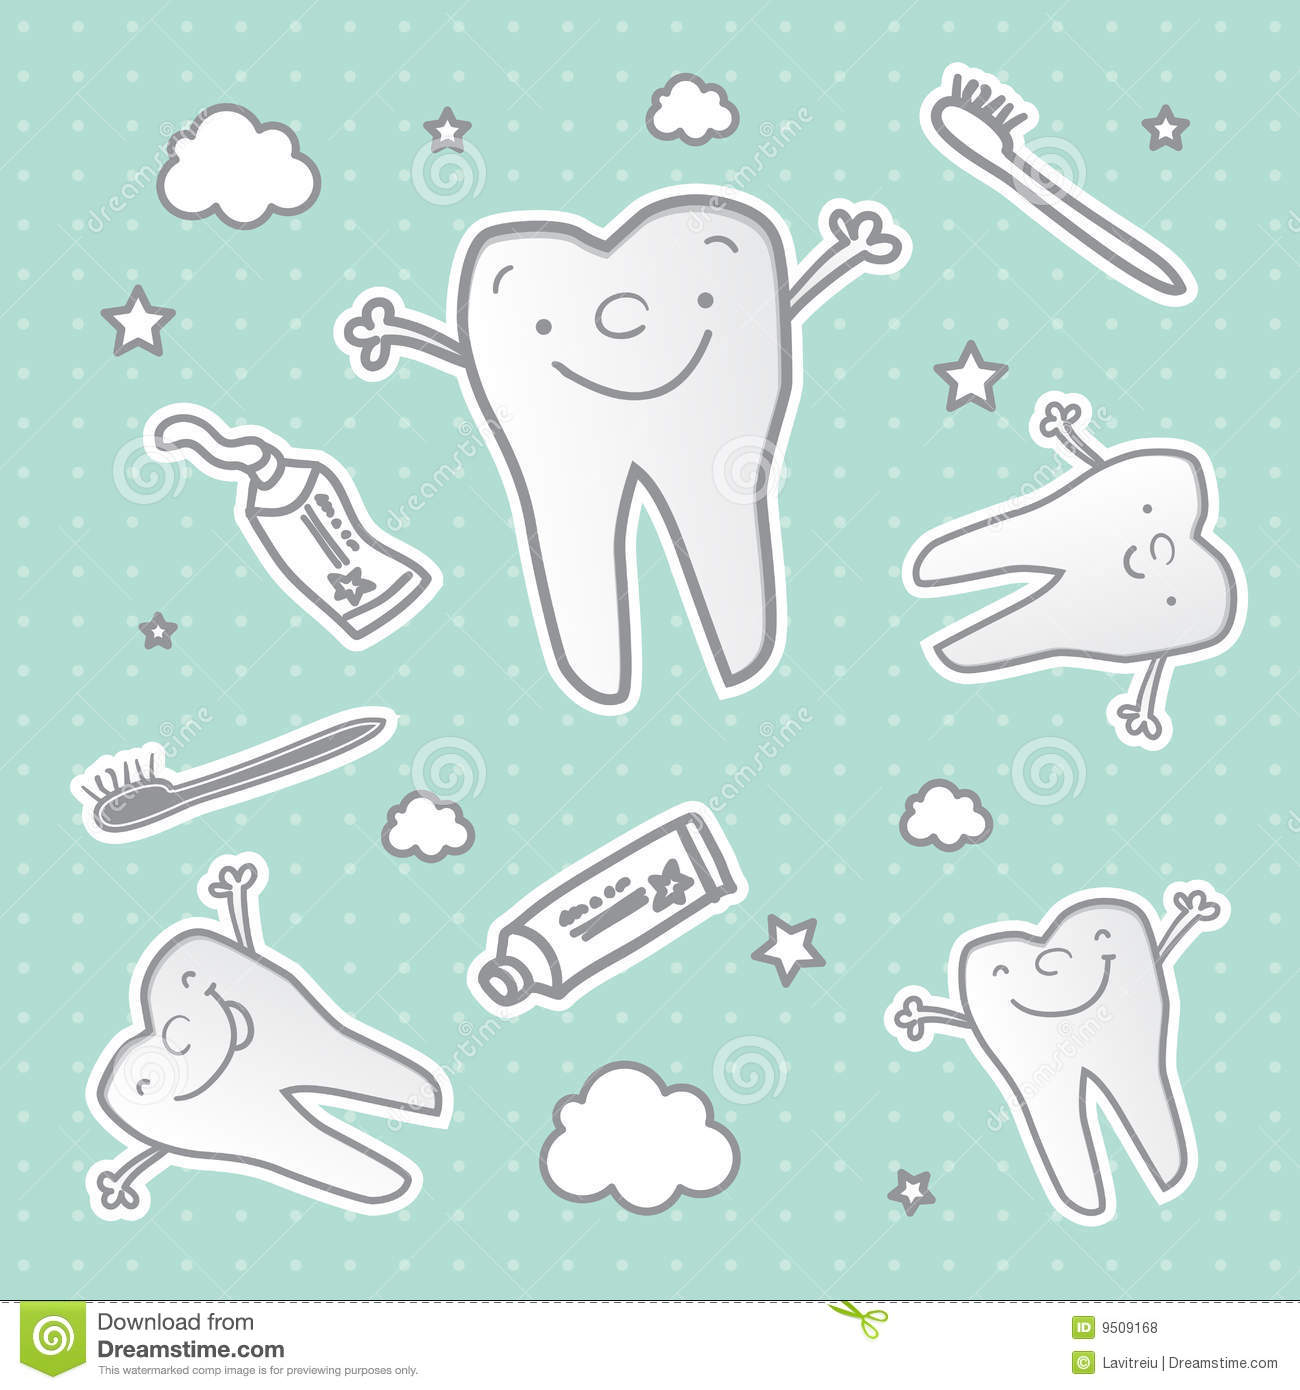 Healthy Tooth Cartoon Wallpaper Royalty Free Stock Photos ...